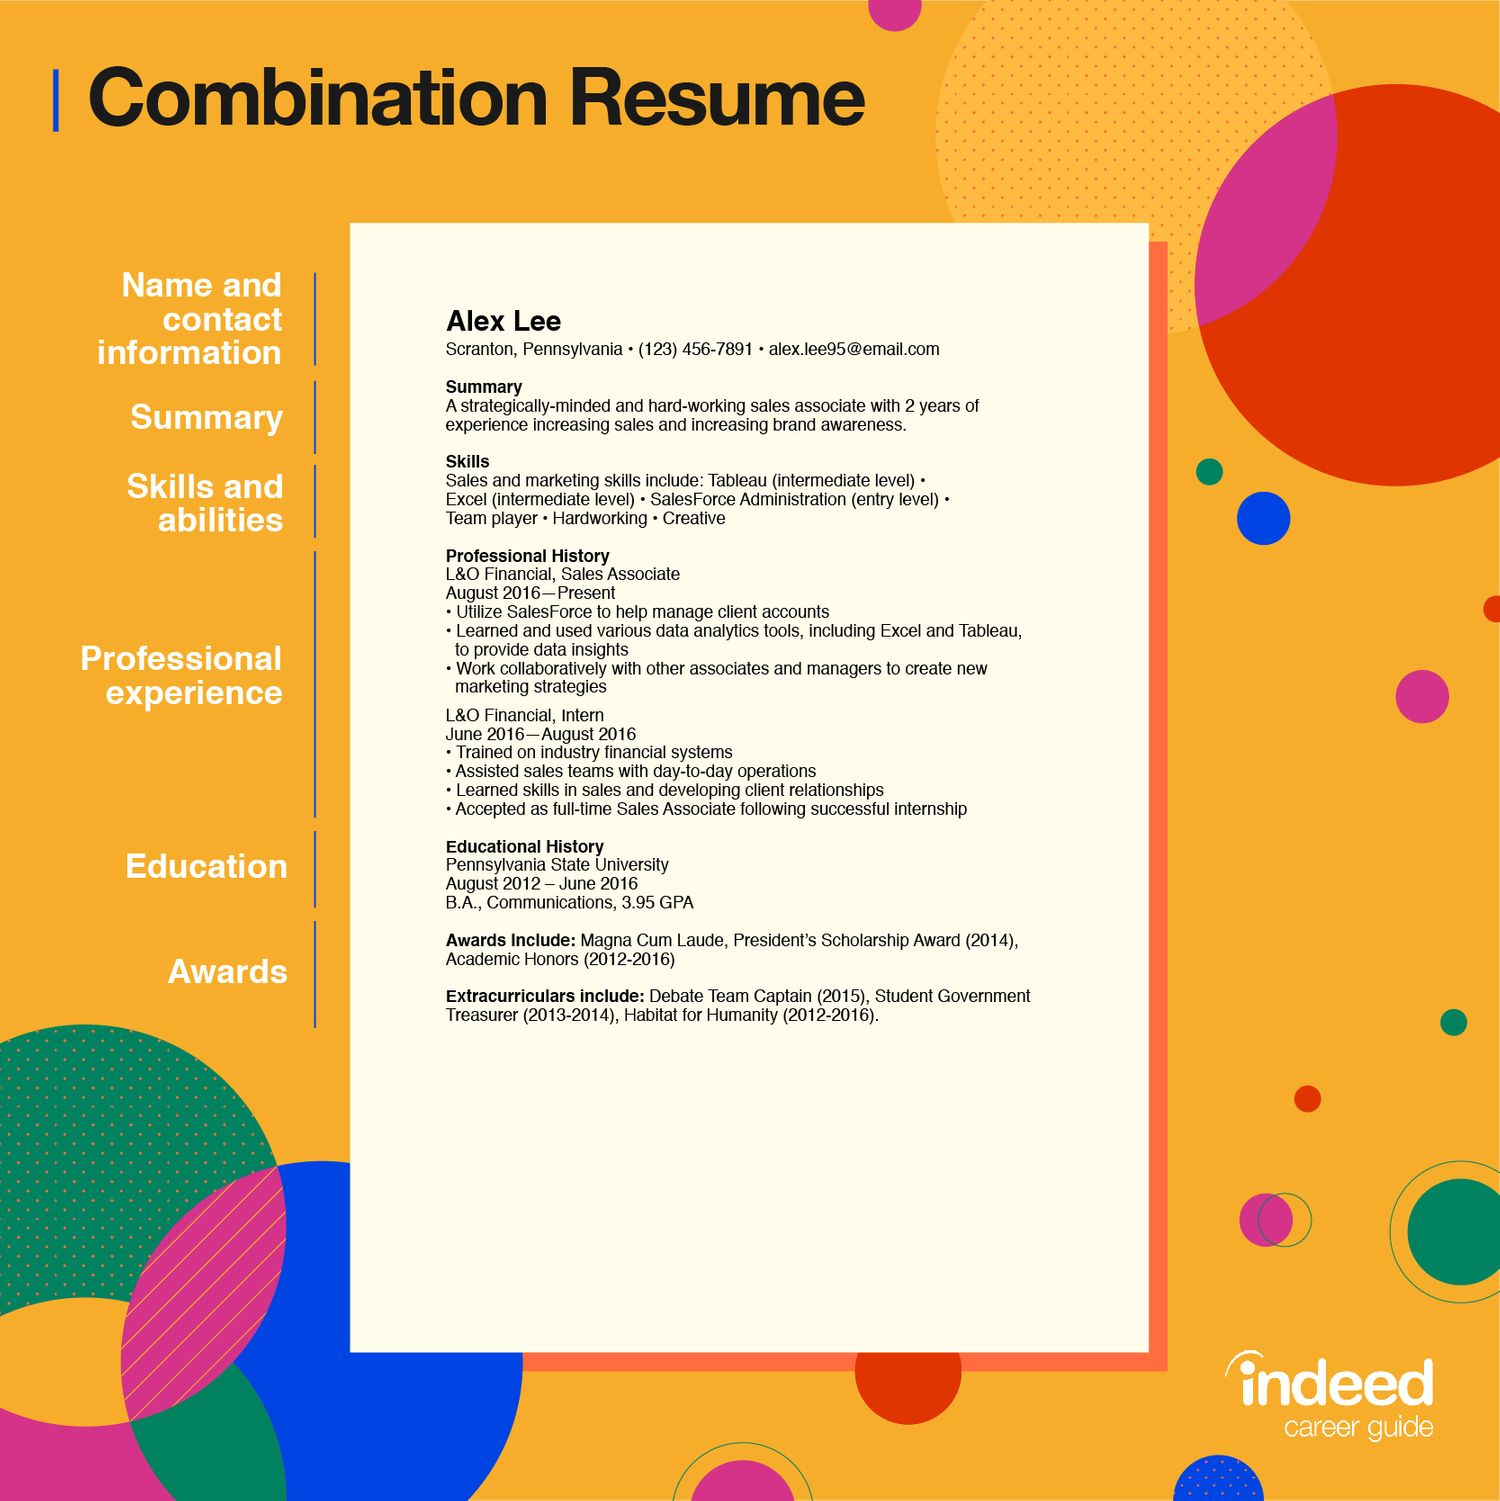 resume format guide tips and examples of the best formats indeed for making great resized Resume Tips For Making A Great Resume